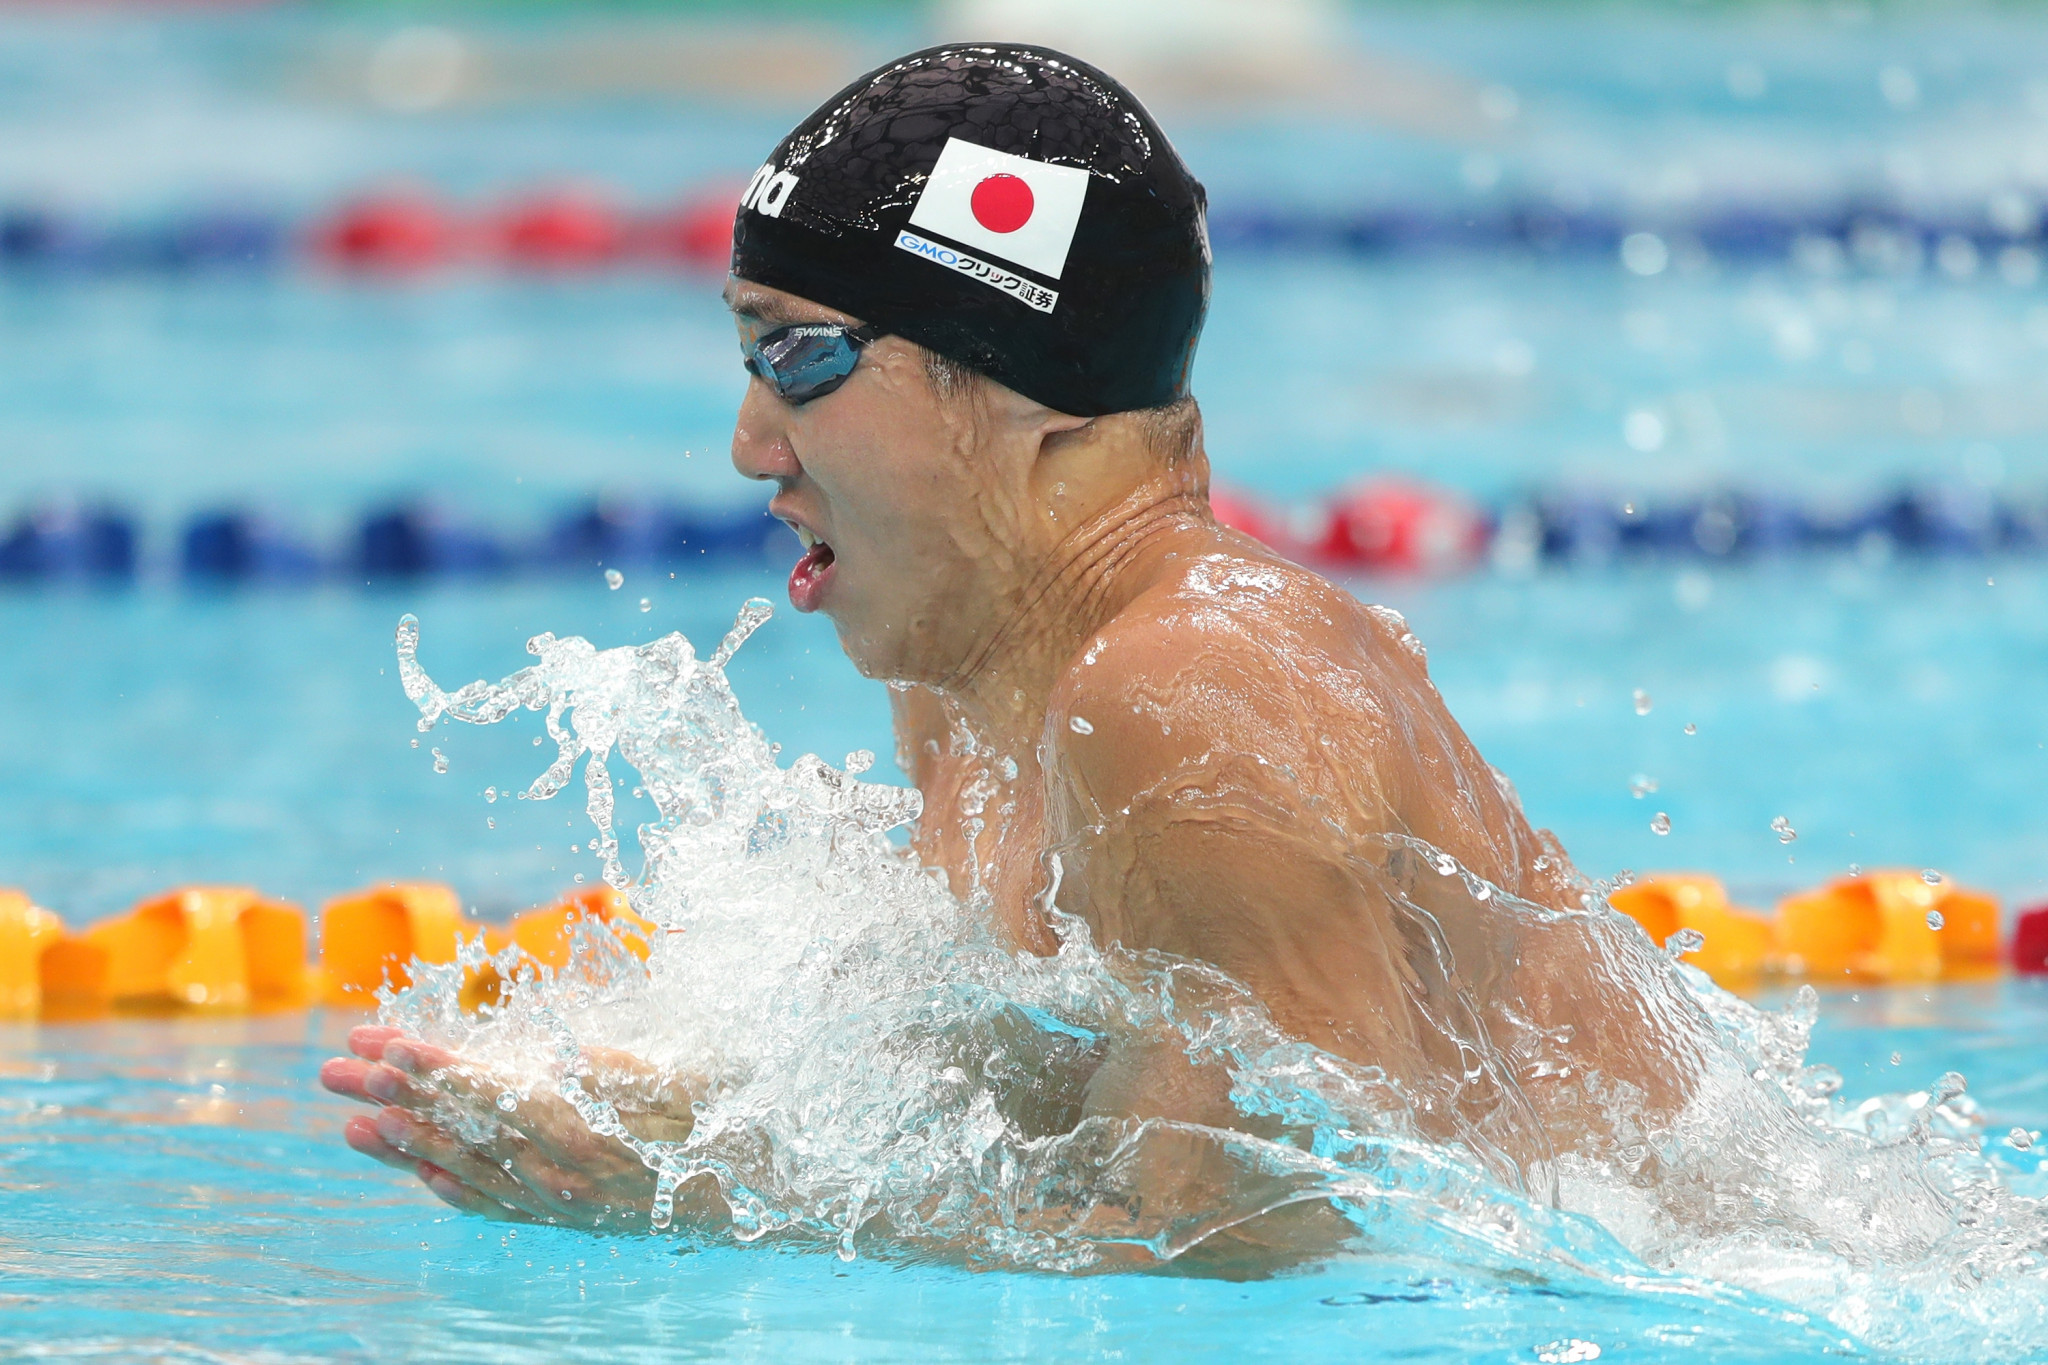 Hiromasa Fujimori won two bronze medals at the World Short Course Championships in December ©Getty Images